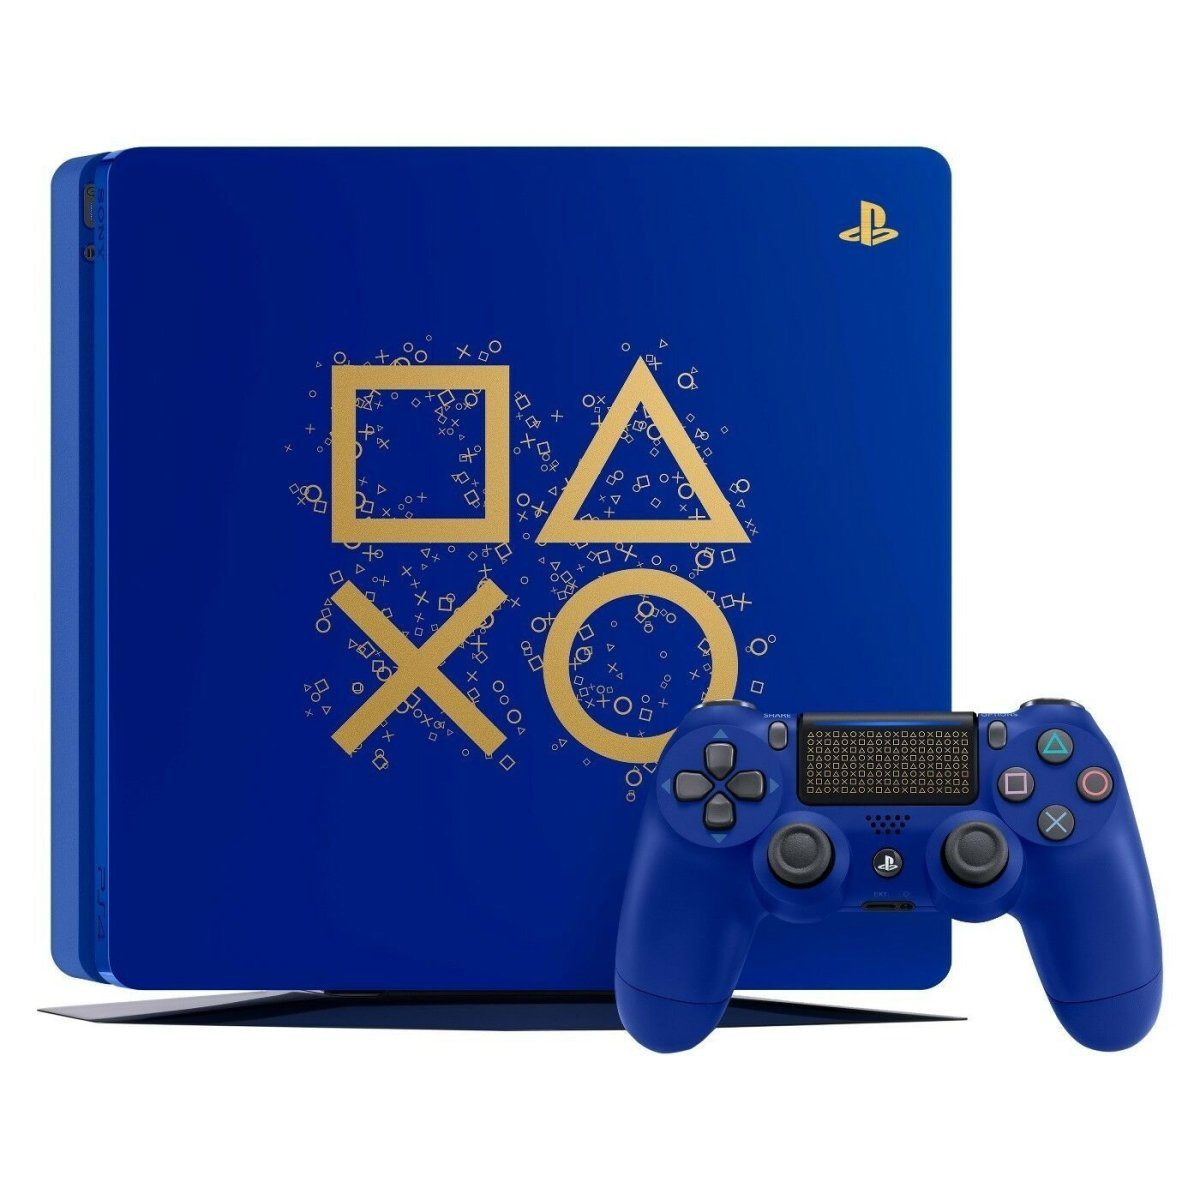 BRAND NEW Sony PlayStation 4  Console - Fix Or Cell Now Device Shop